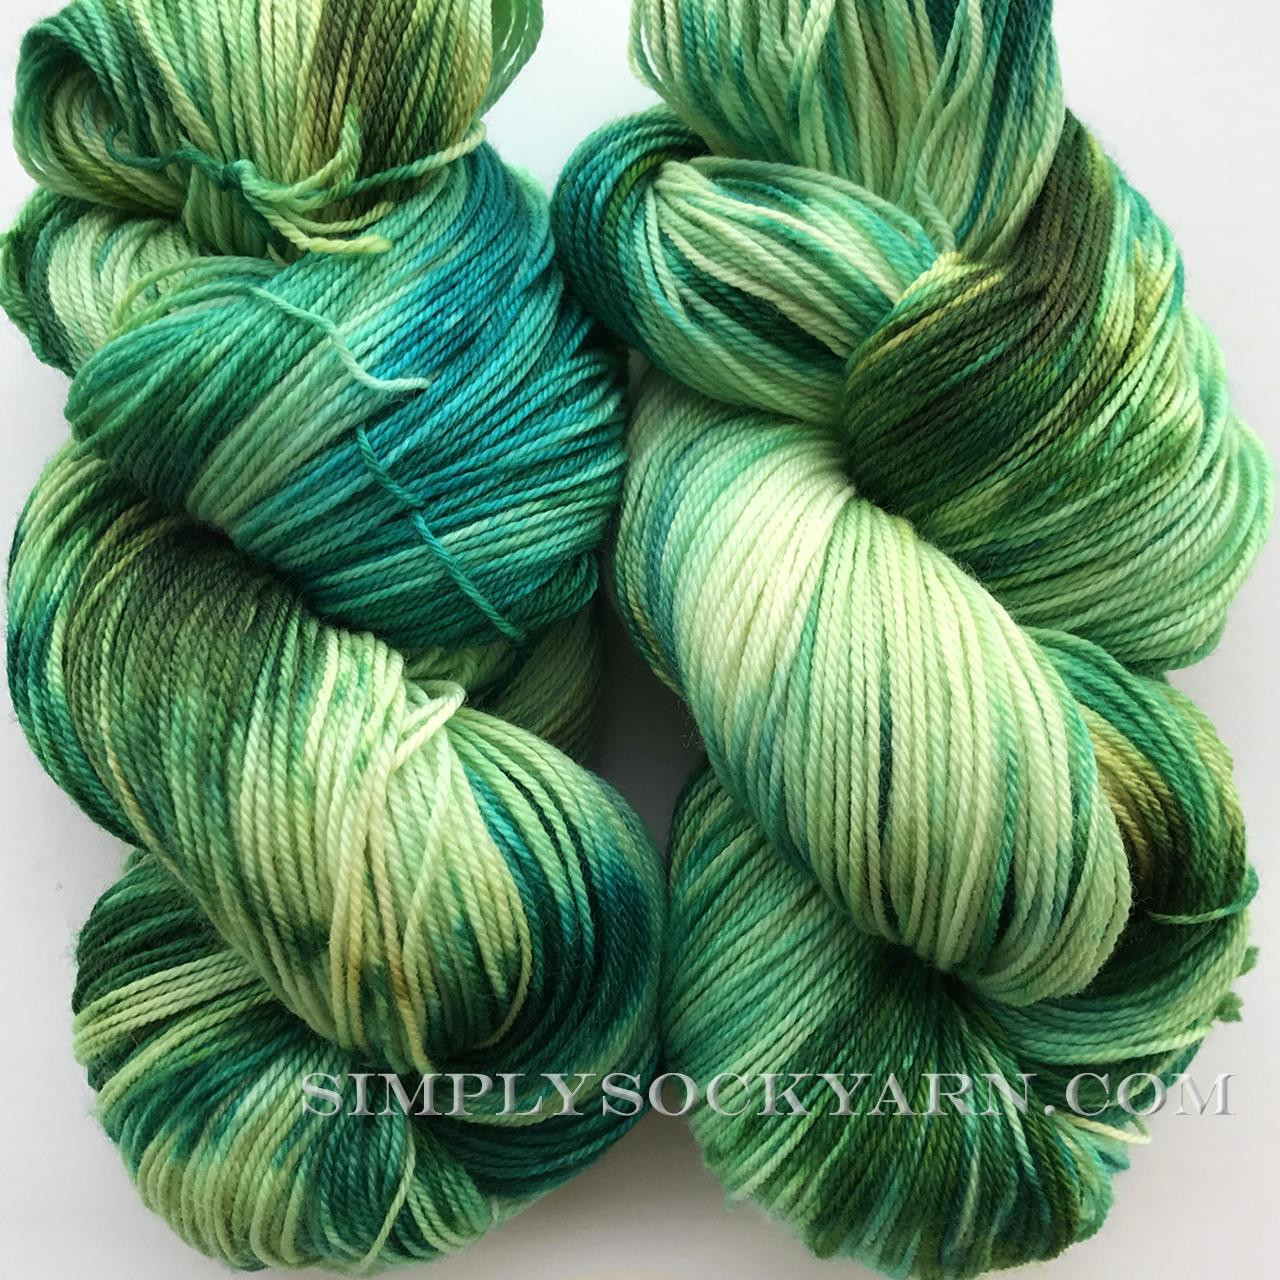 SG TL Sock Seedling -